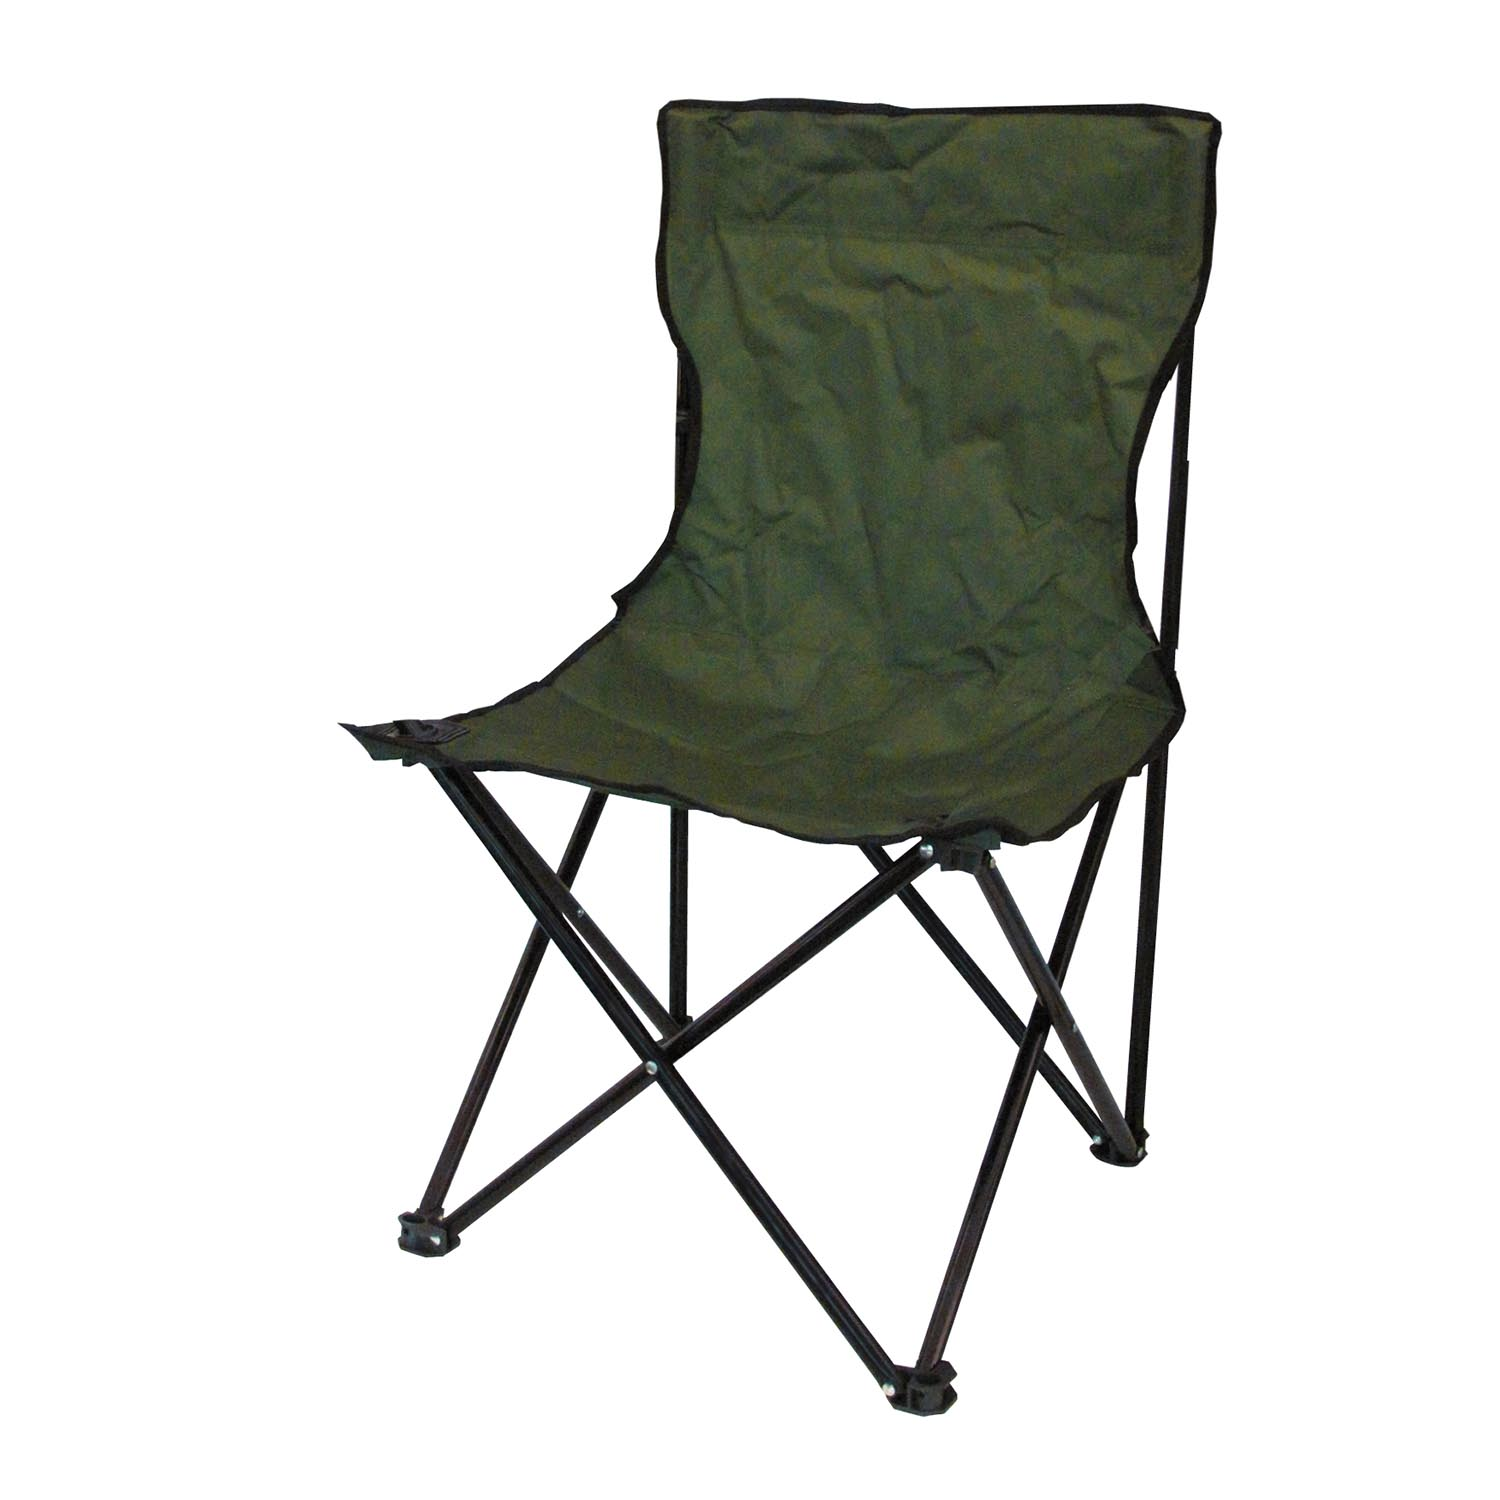 folding chair rack diy used white covers camping no arms homeware essentials